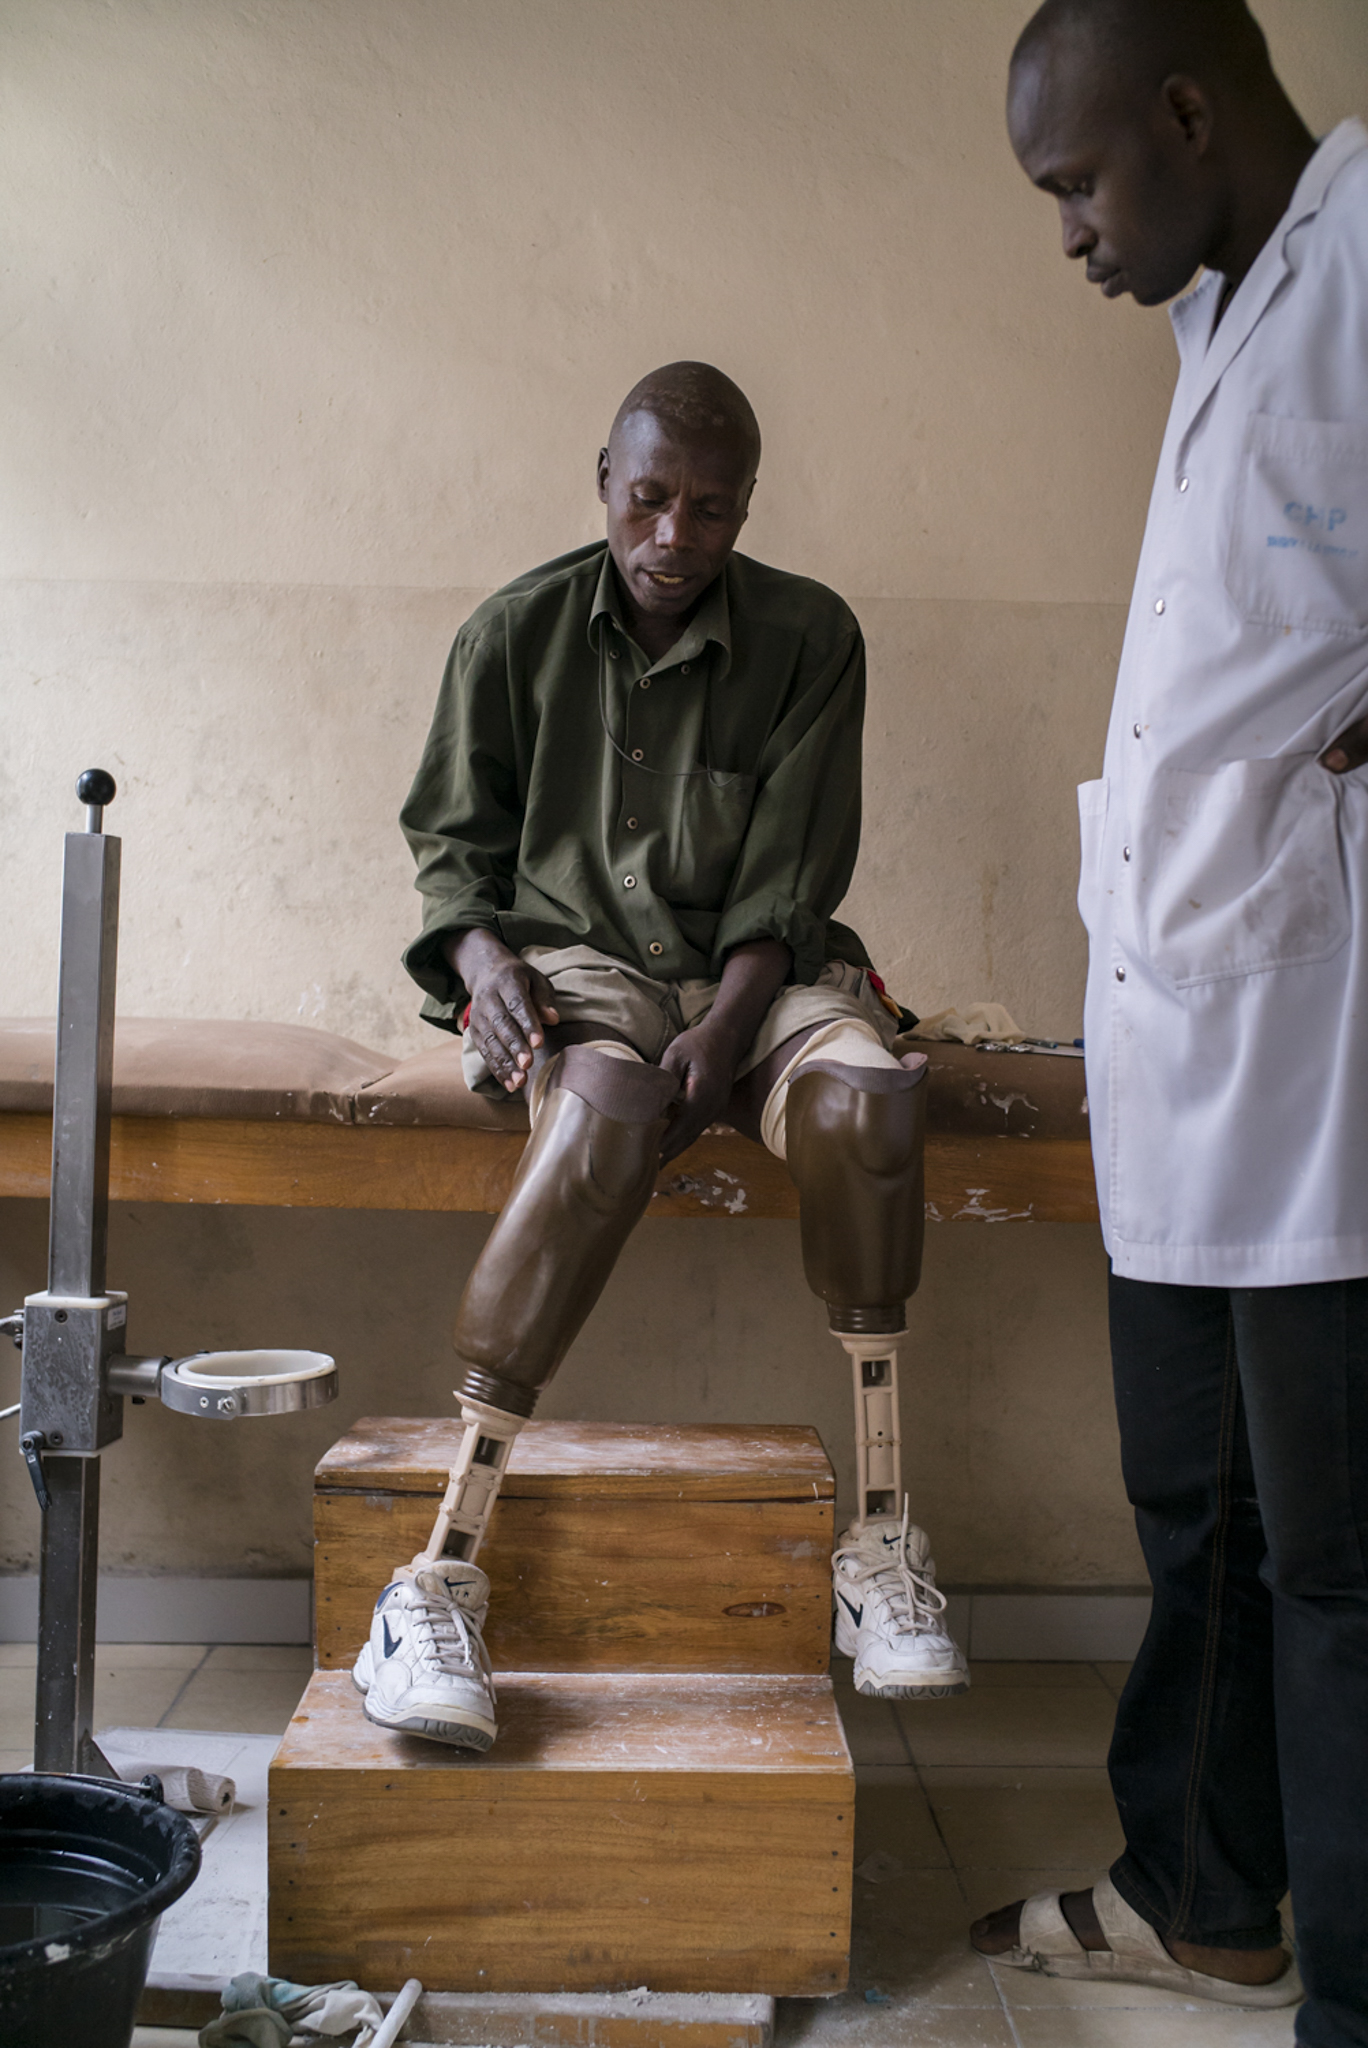 Augustin Semayinga Rukara, 51, a double amputee and father of eight, he puts on his prosthetic limb at a doctor's office. Augustin's village of Mpati, in Masisi territory of North Kivu, was attacked in June 2013 and he lost his right leg after he was hit by a bullet. In October of that year he received his first prosthesis from the ICRC. In March 2016, his village was attacked again, and this time fighters shot Augustin in the left leg as he fled for his life. In July 2017, Augustin's second leg had to be amputated. With a second prothetic leg from the ICRC, he was able to walk again. Centre pour Handicapes Physiques Shrika La Umoja, Goma, North Kivu, Democratic Republic of Congo. August 30, 2017.